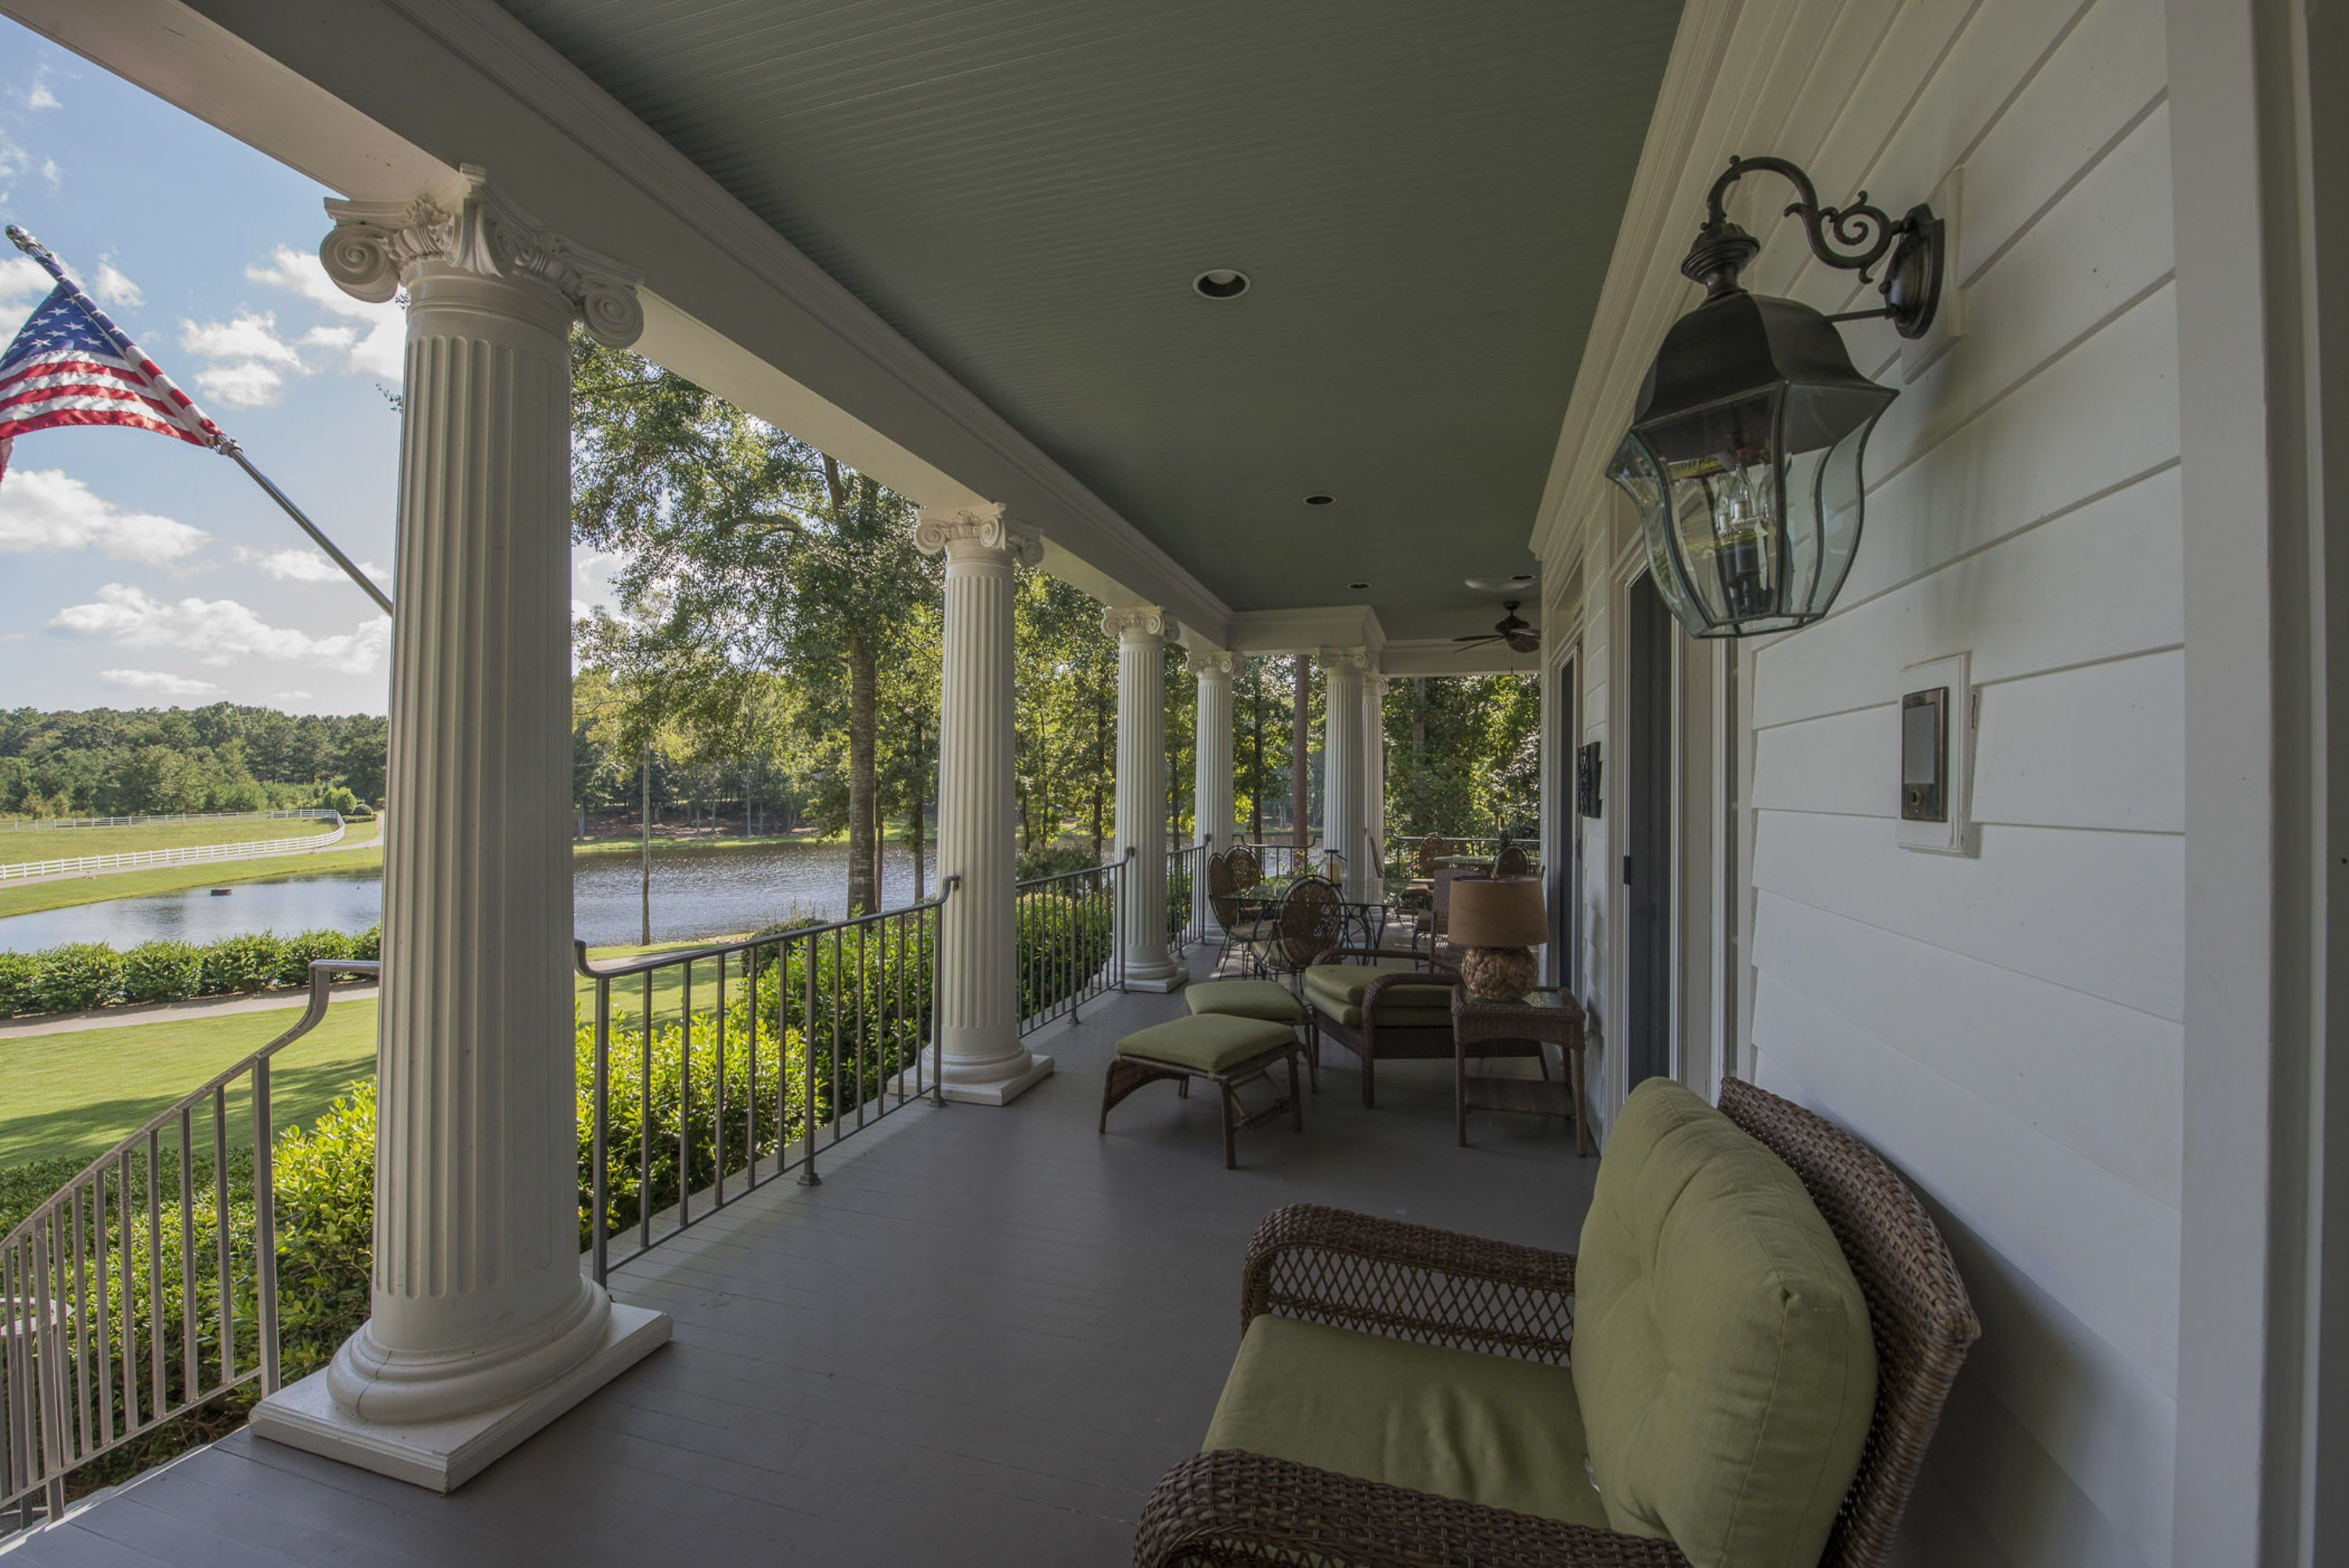 Pin on The Plantation 10BR/8.5BA Luxury LakeFront